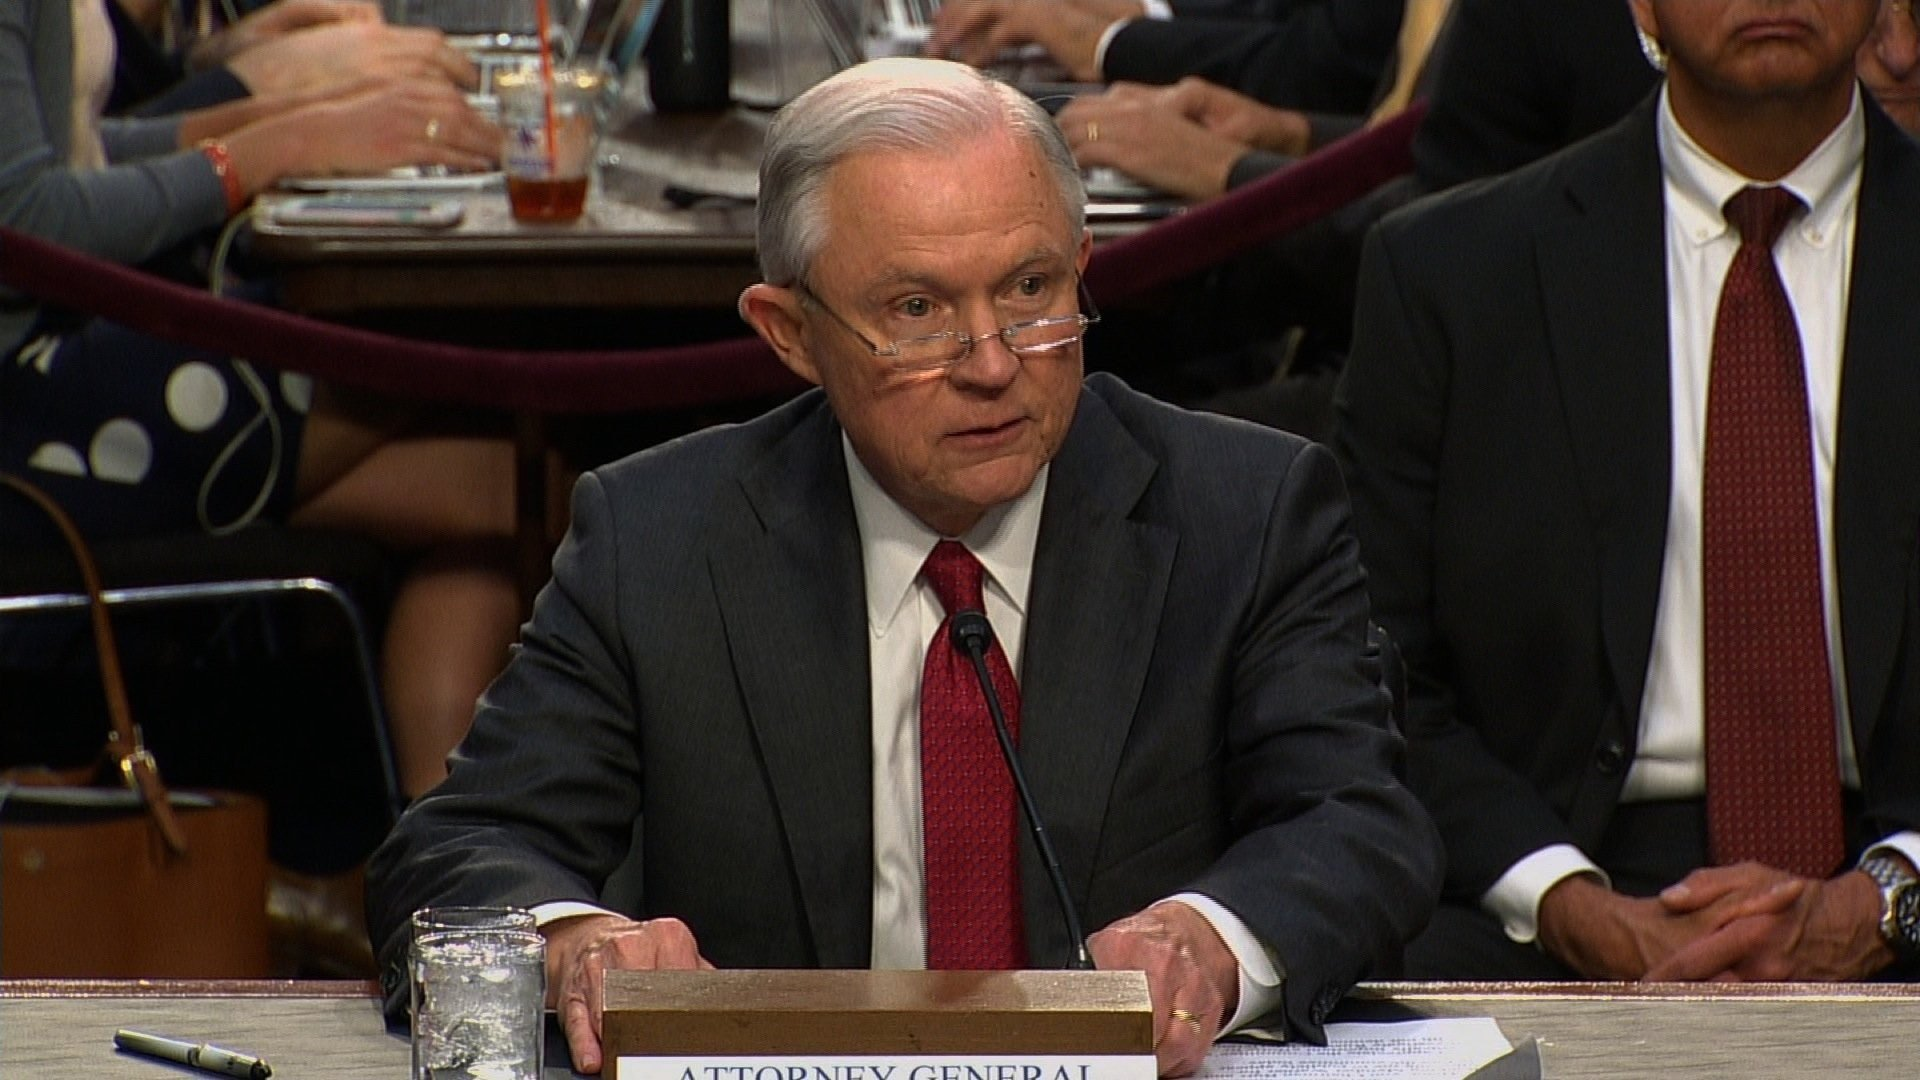 Attorney General Jeff Sessions testifies about the Russia probe at an opening hearing conducted by the Senate Select Committee on Intelligence on Tuesday